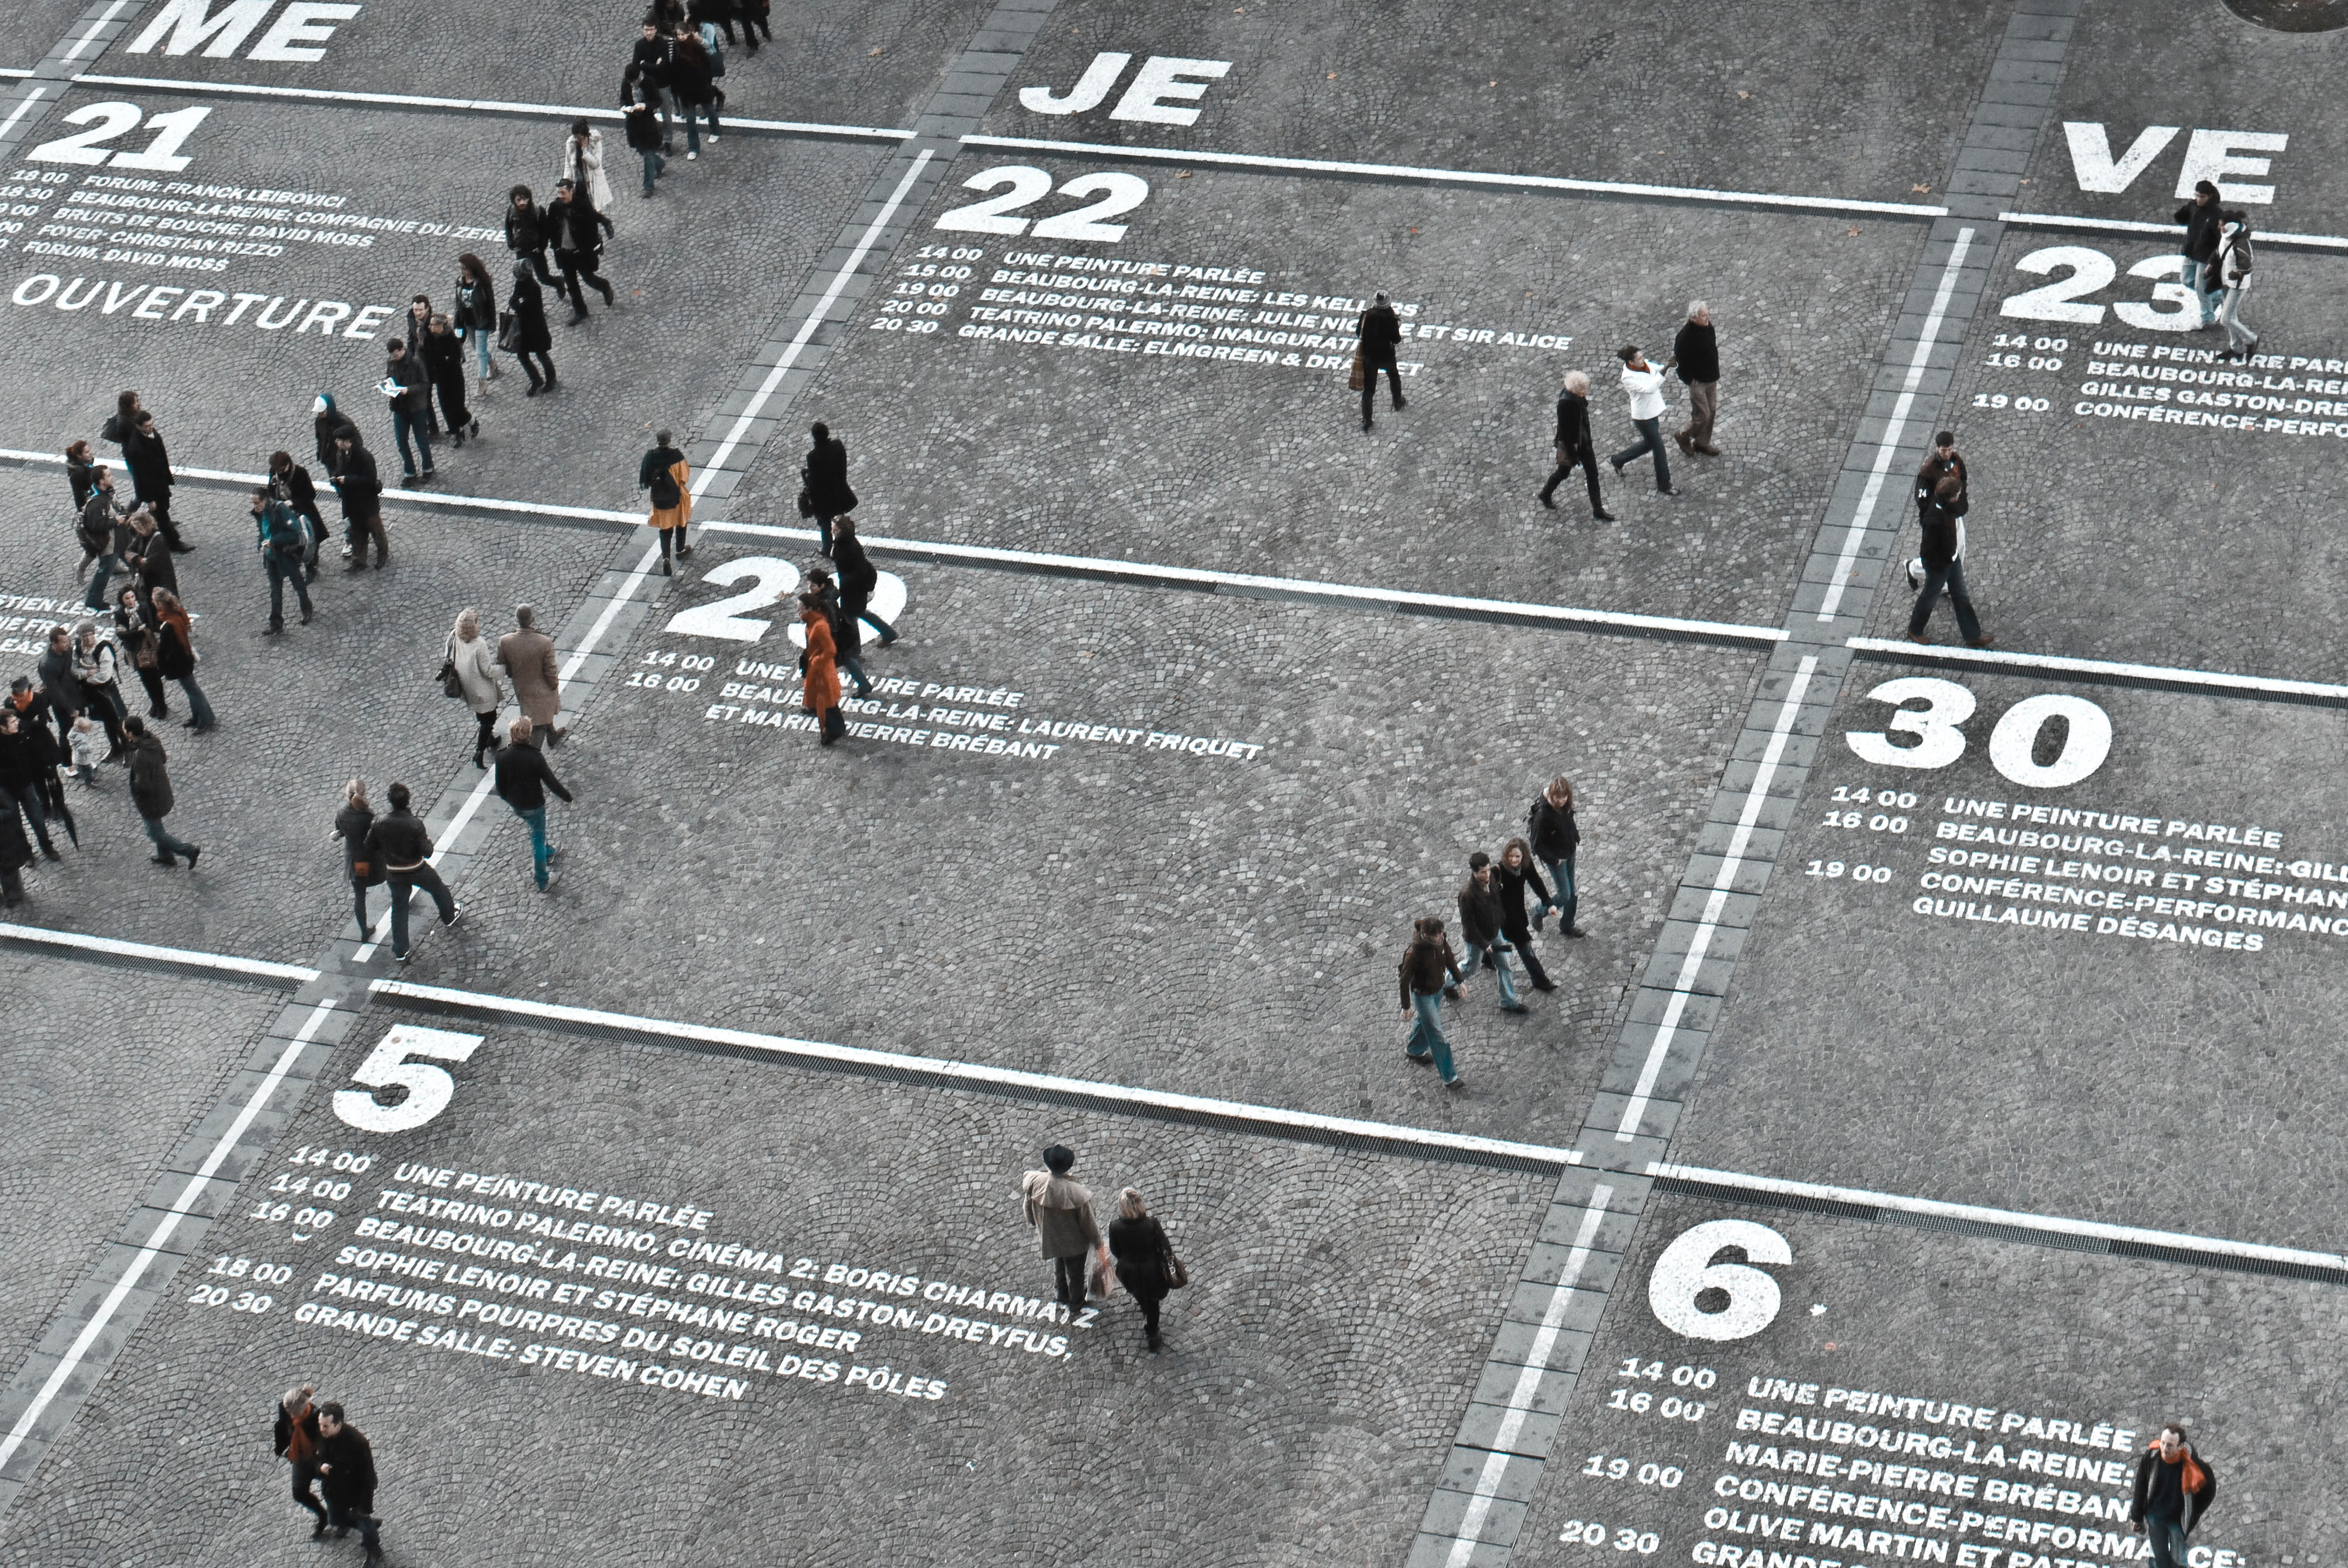 A street at the Centre Pompidou in Paris on which I calendar grid has been painted showing people walking through various days